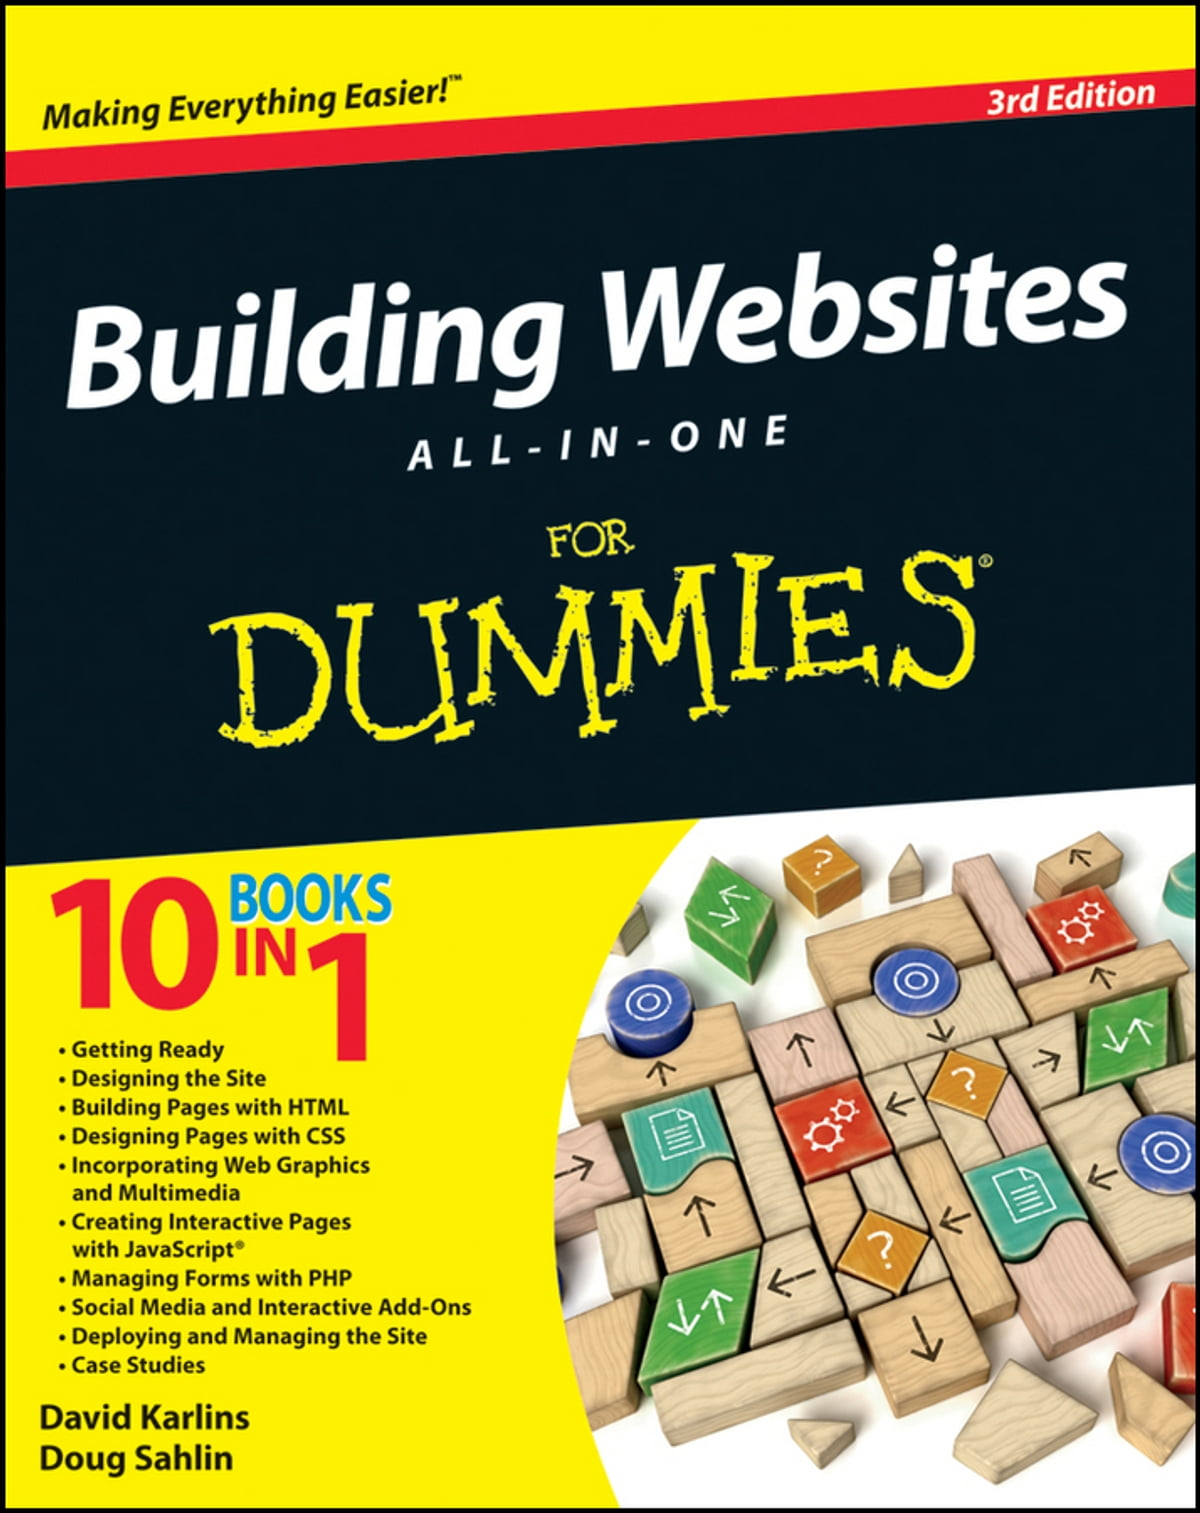 Building Websites All-in-One For Dummies eBook by David Karlins -  9781118283486 | Rakuten Kobo